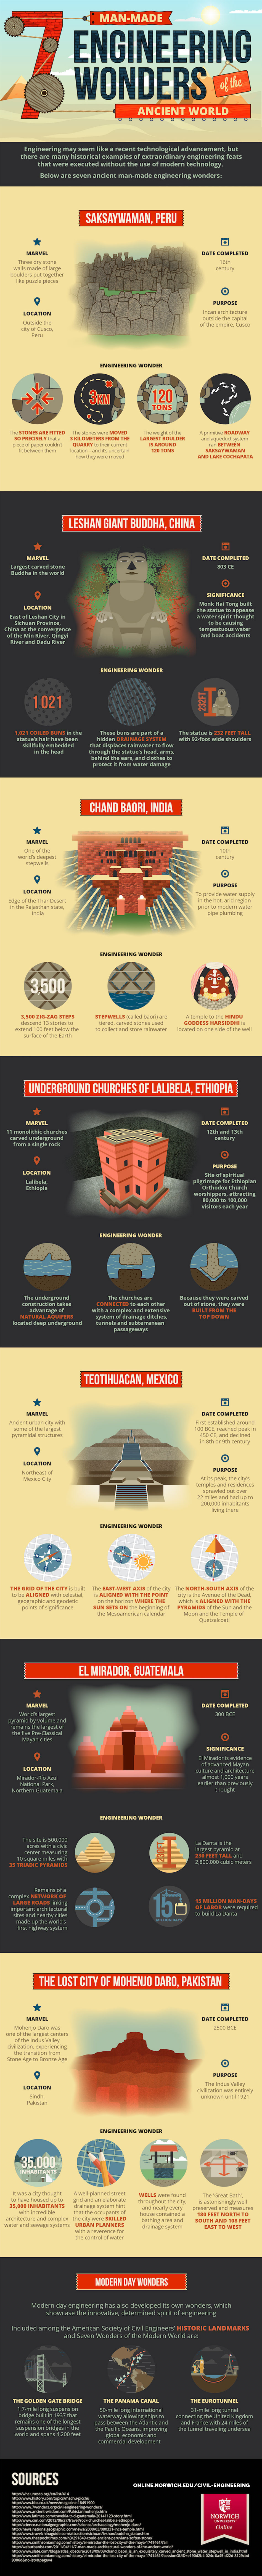 7 Timeless Engineering Structures of the Ancient World - Infographic